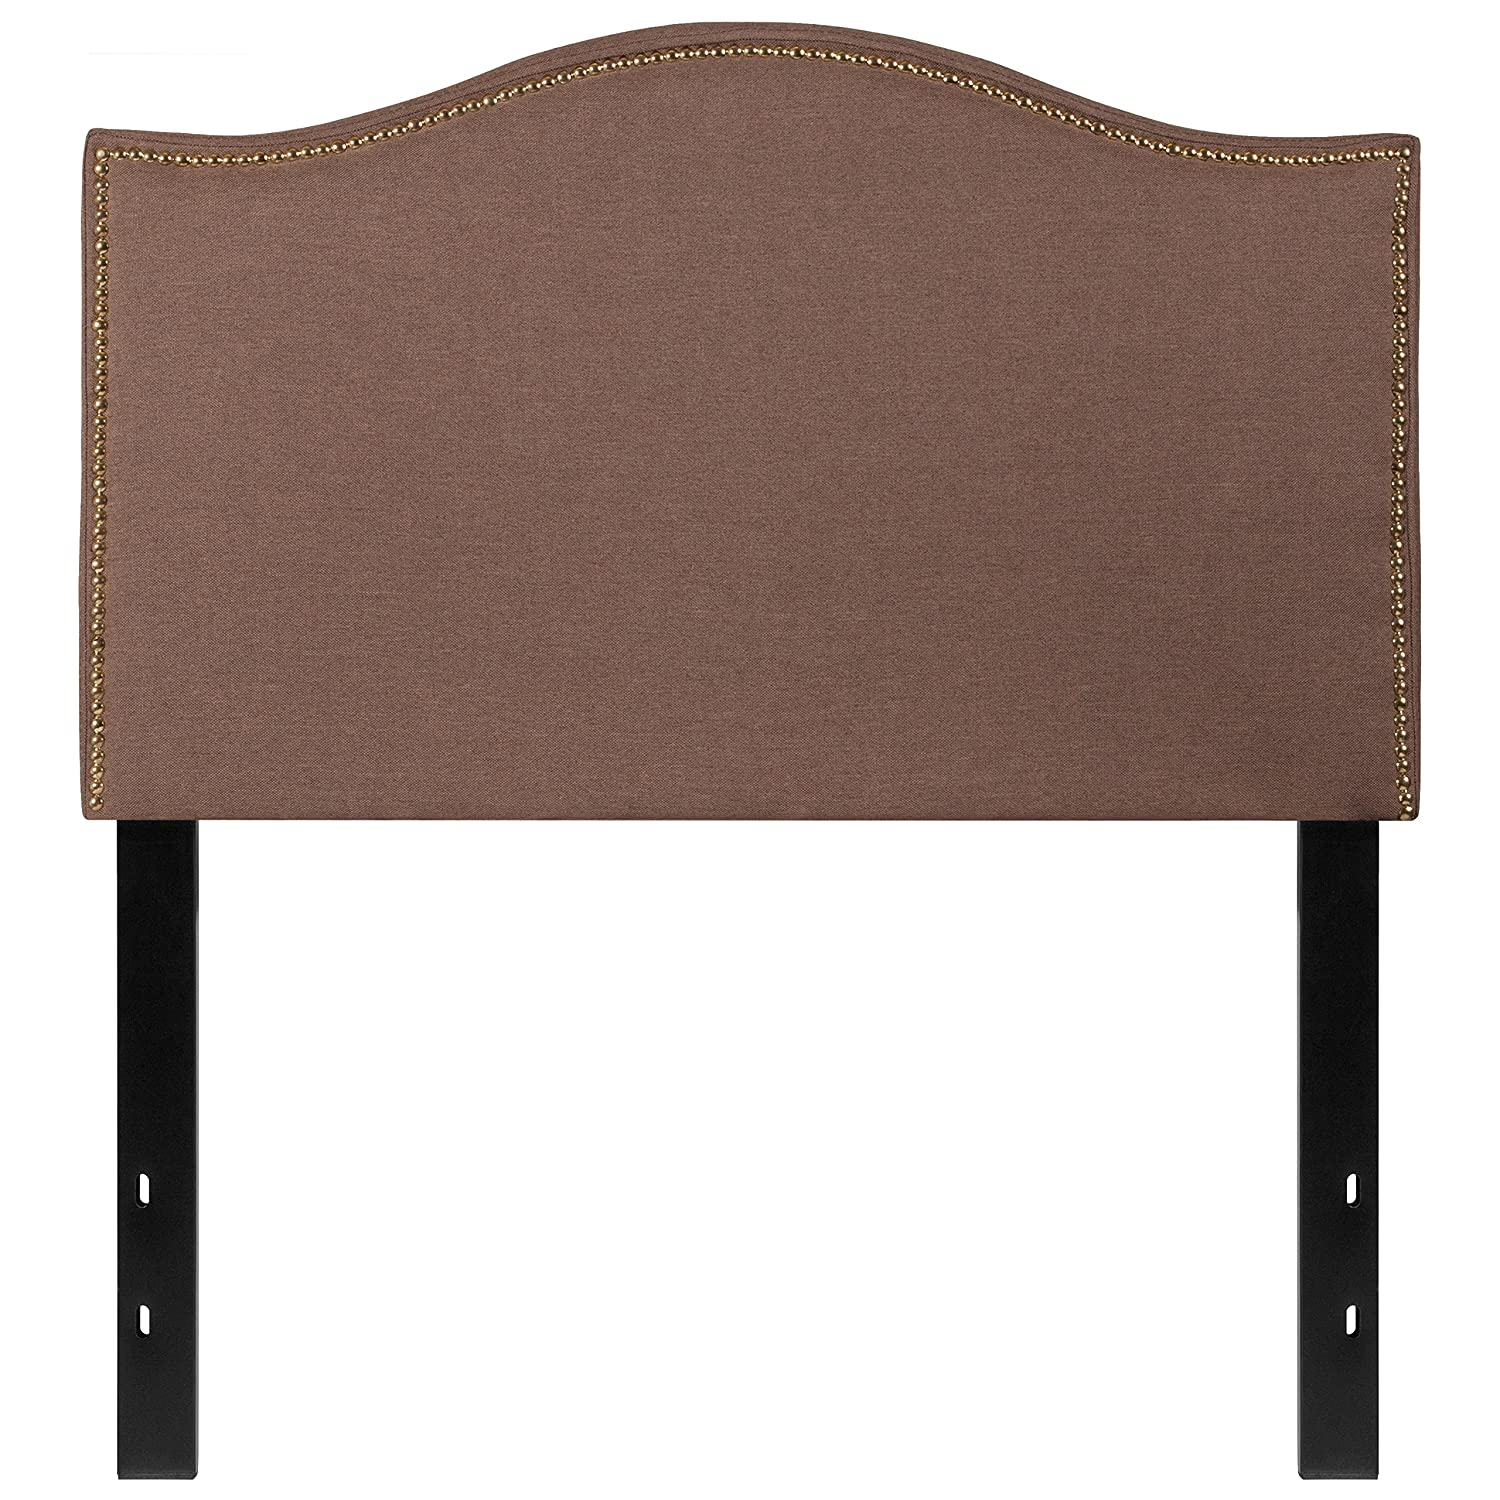 Flash Furniture Lexington Upholstered Twin Size Headboard with Decorative Nail Trim in Beige Fabric HG-HB1707-T-B-GG